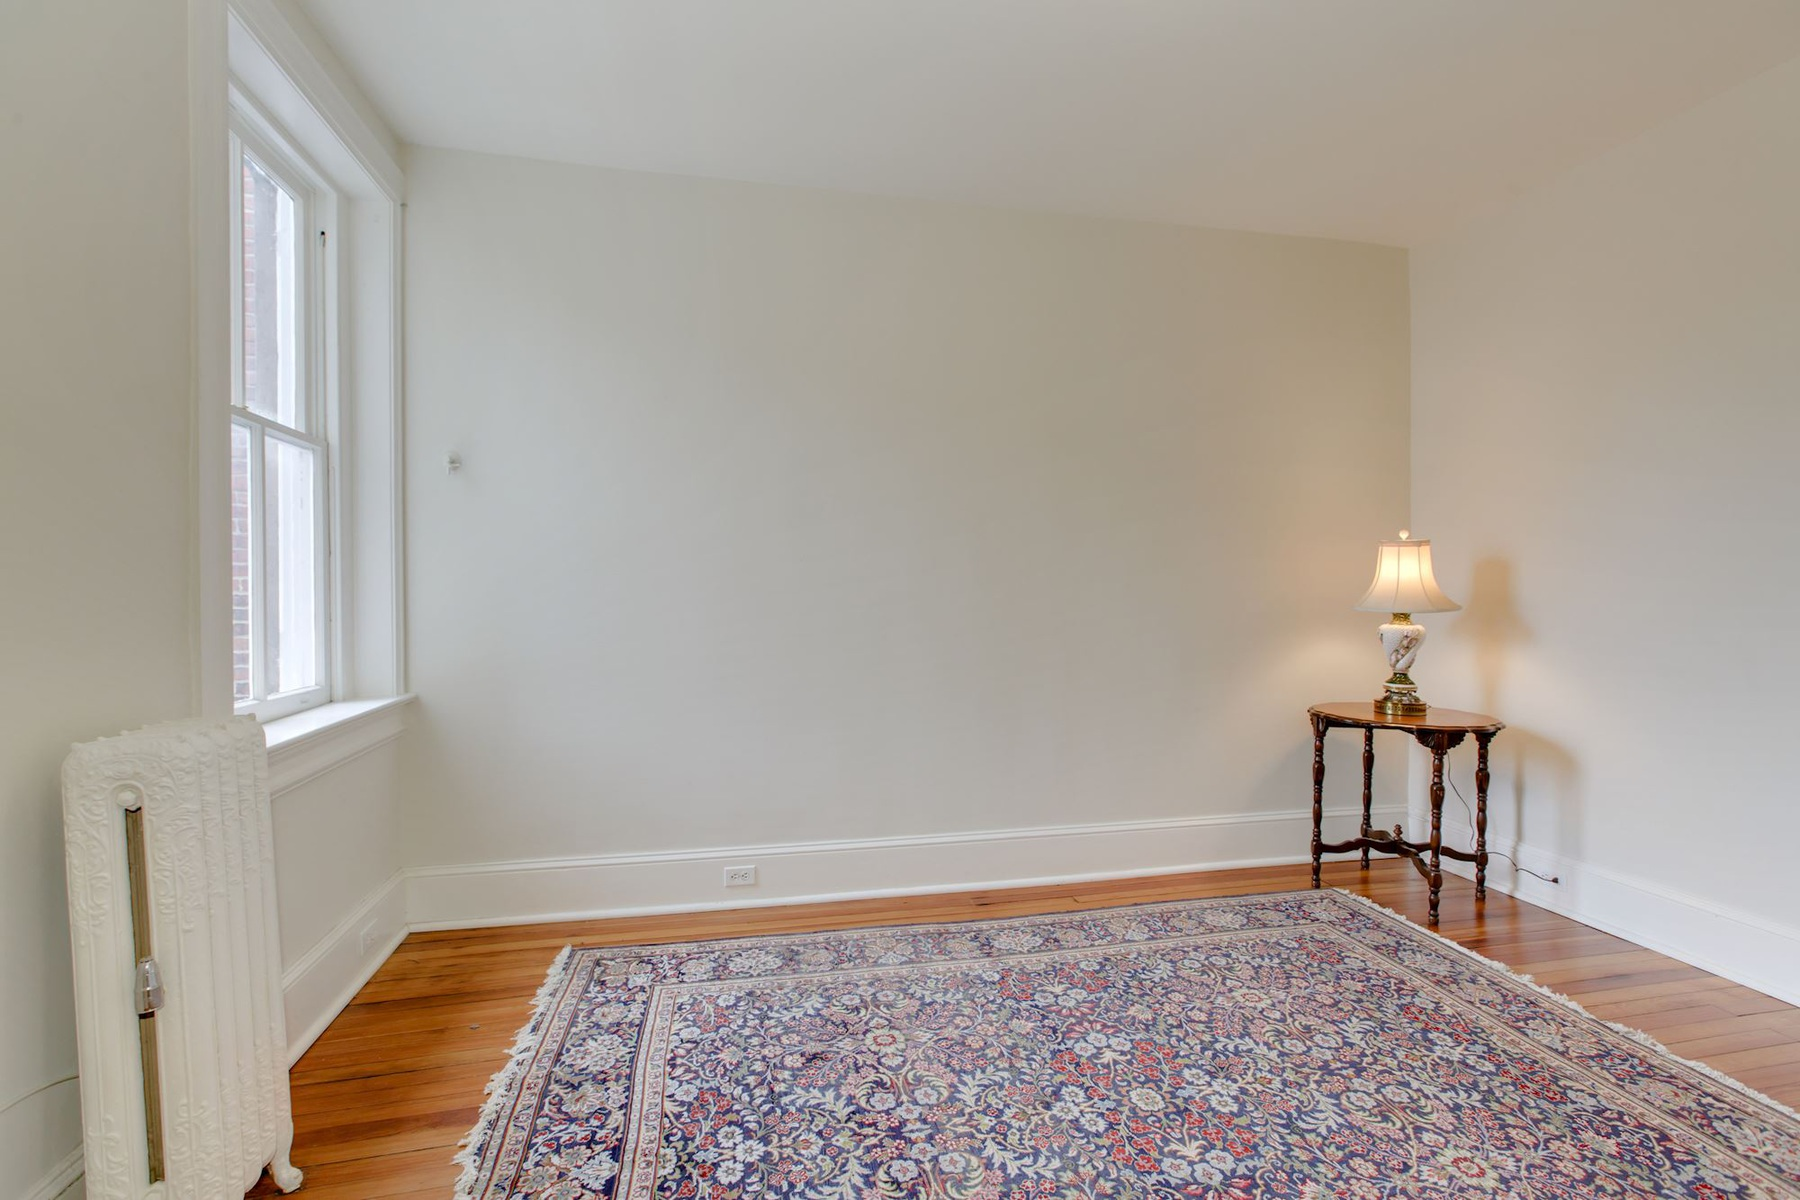 Additional photo for property listing at 1915 S Street Nw, Washington  华盛顿市, 哥伦比亚特区 20009 美国